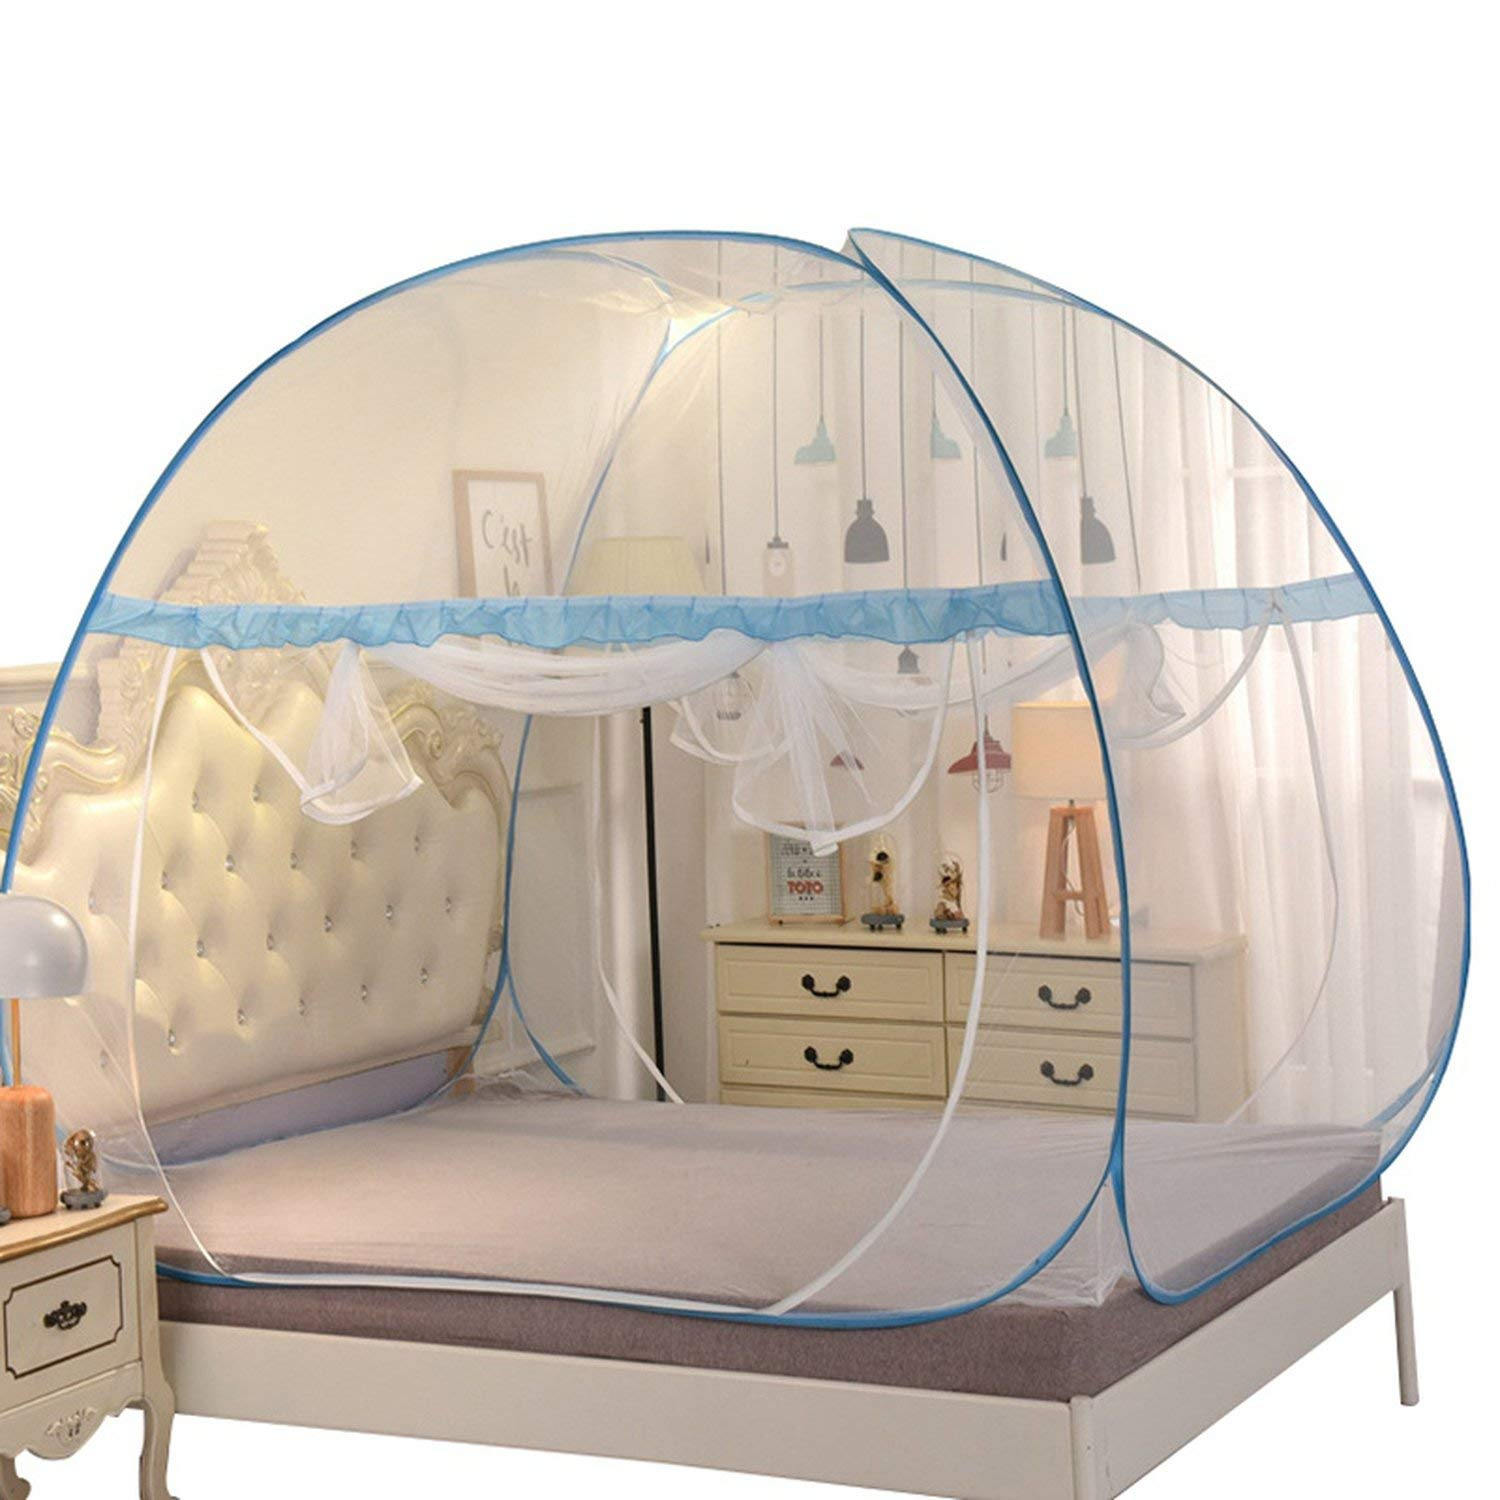 From Zero mosquito net Portable Mongolian Installation Double Door Mosquito Nets Folding Outdoor Camping Mosquito Nets,Blue,S